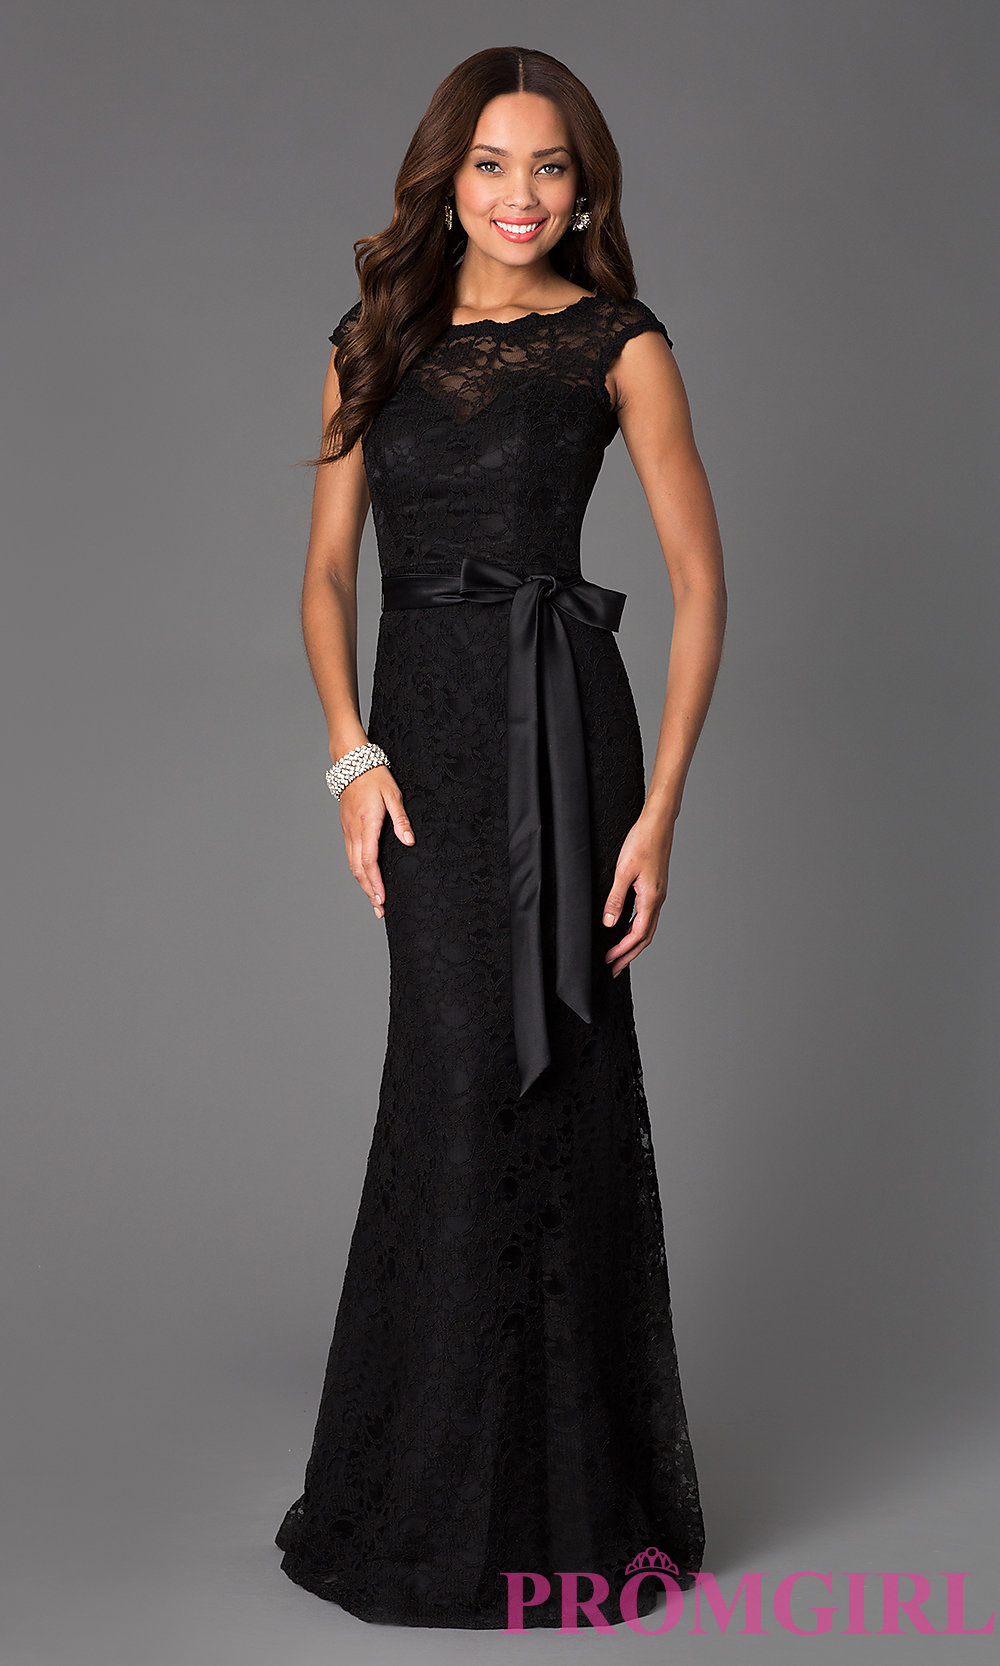 black evening dresses hover to zoom YBDWIAL